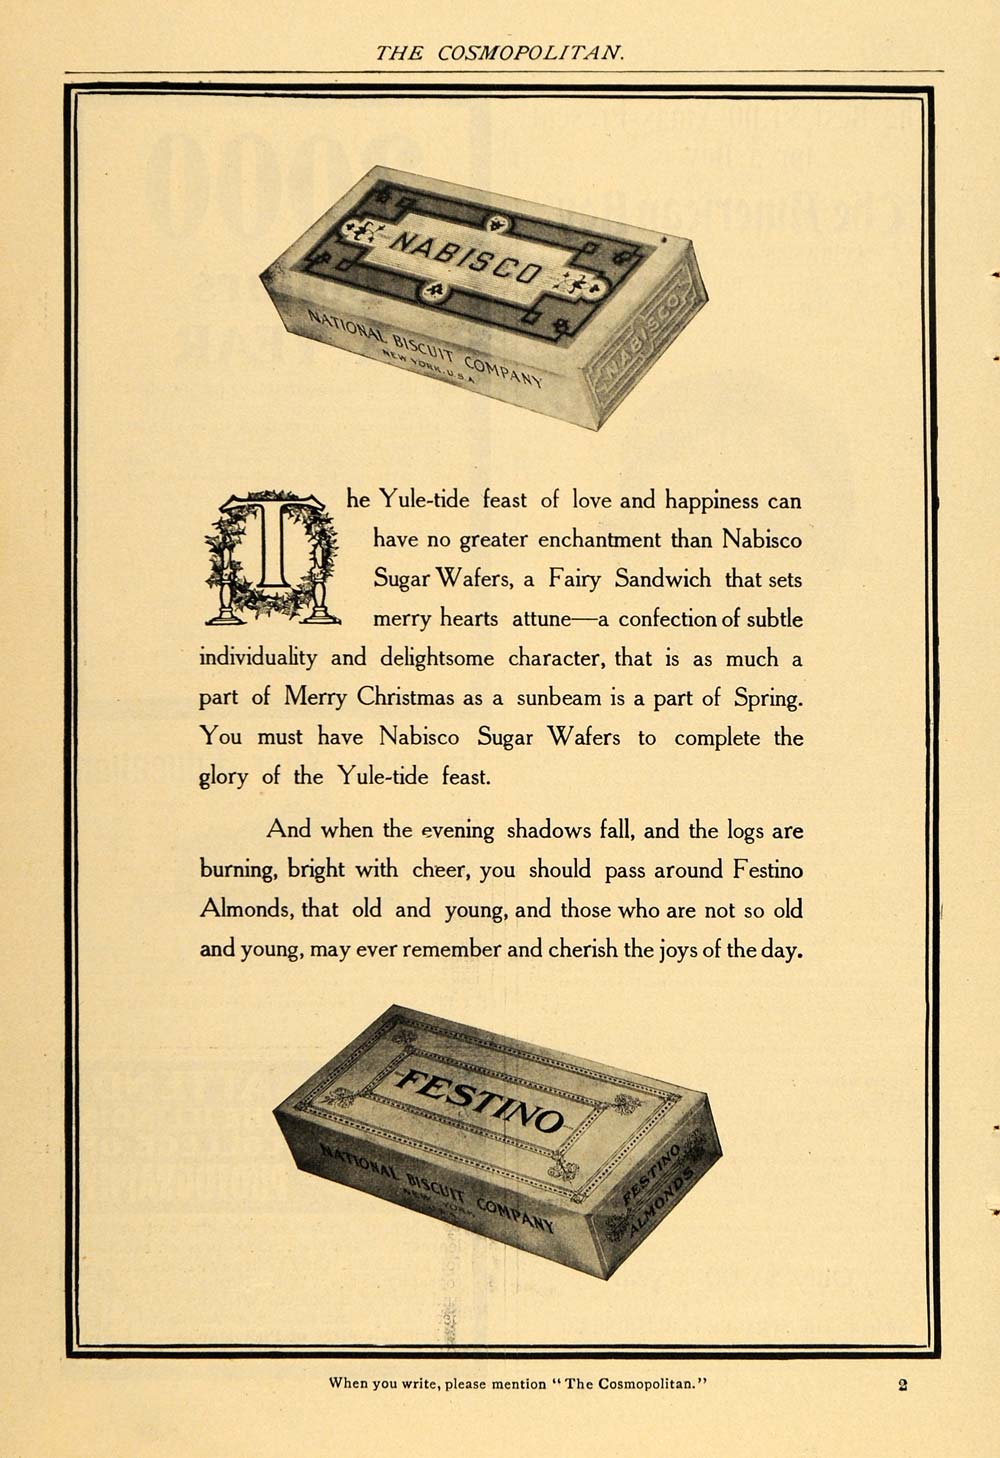 1904 Vintage Ad Nabisco Sugar Wafers Festino Almonds - ORIGINAL OLD3A